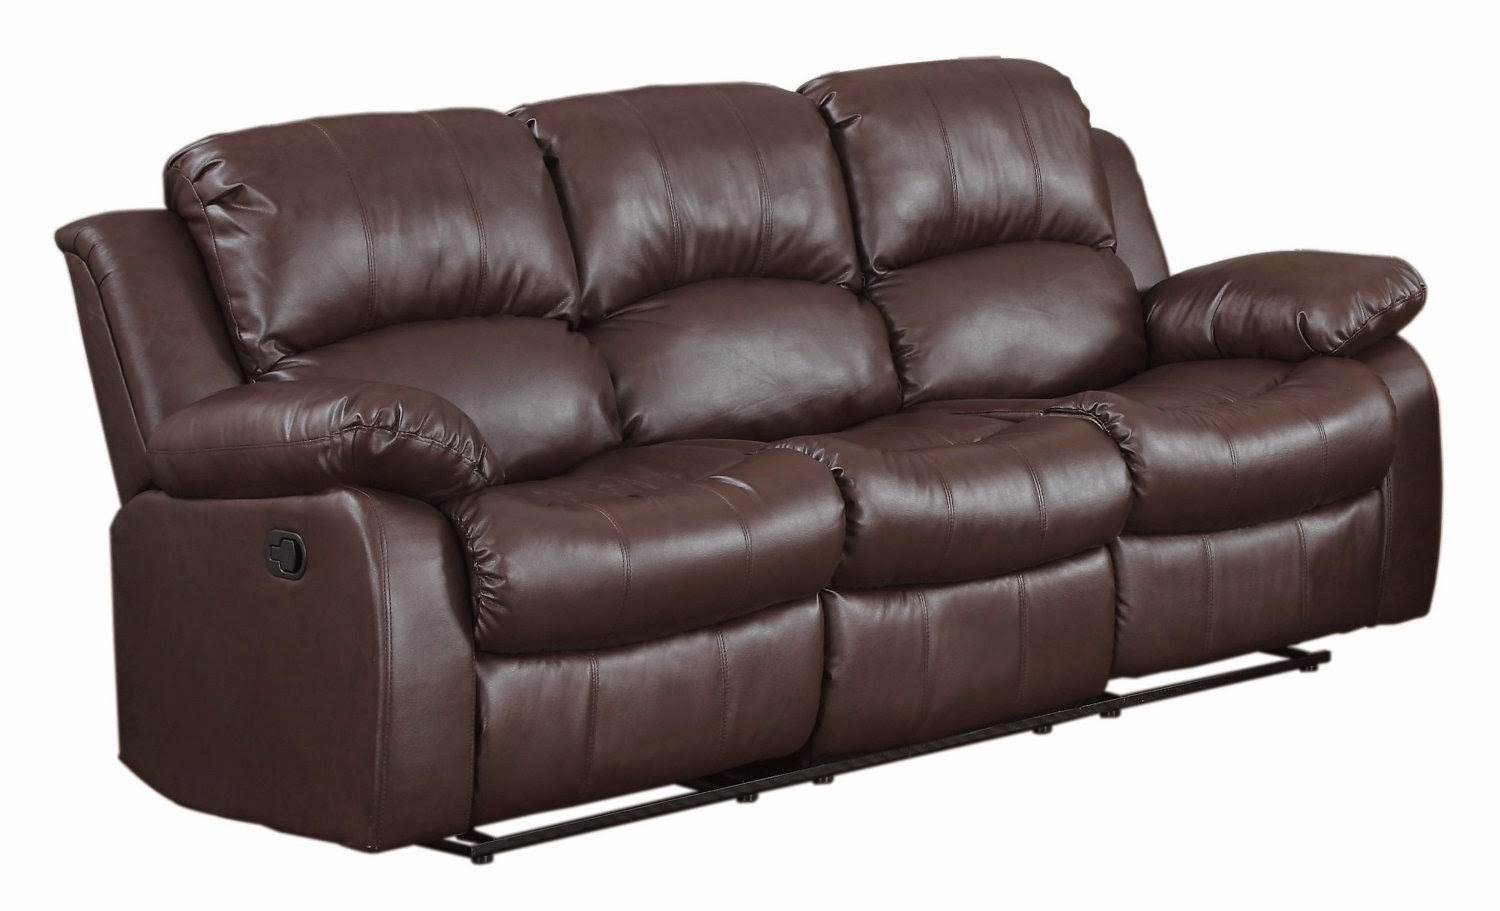 Cheap Faux Leather Recliner Sofas